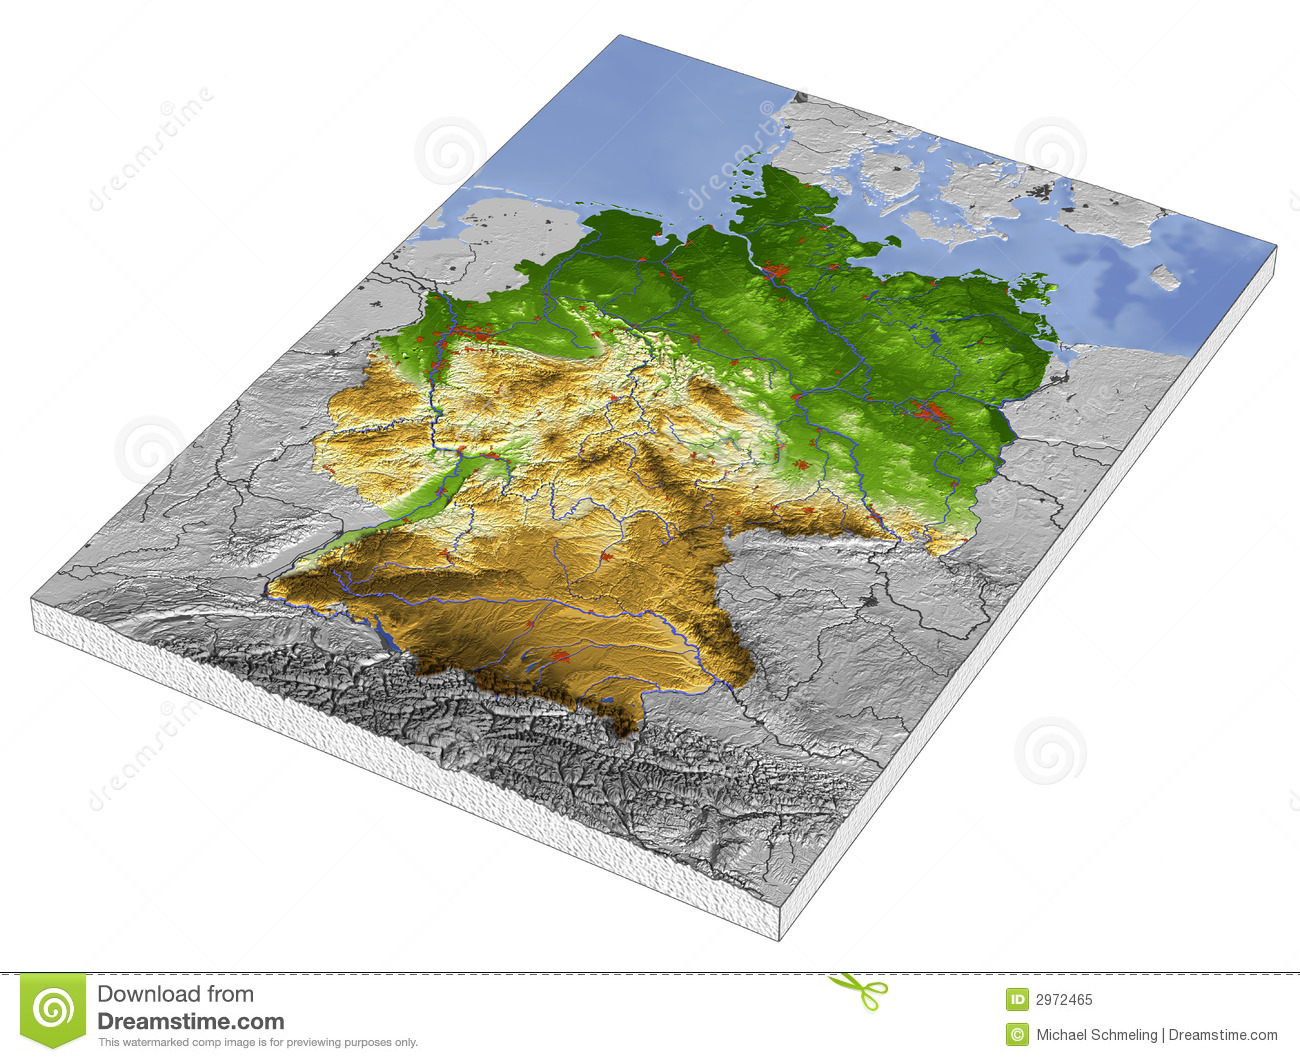 germany 3d relief map stock illustration illustration of chart 2972465